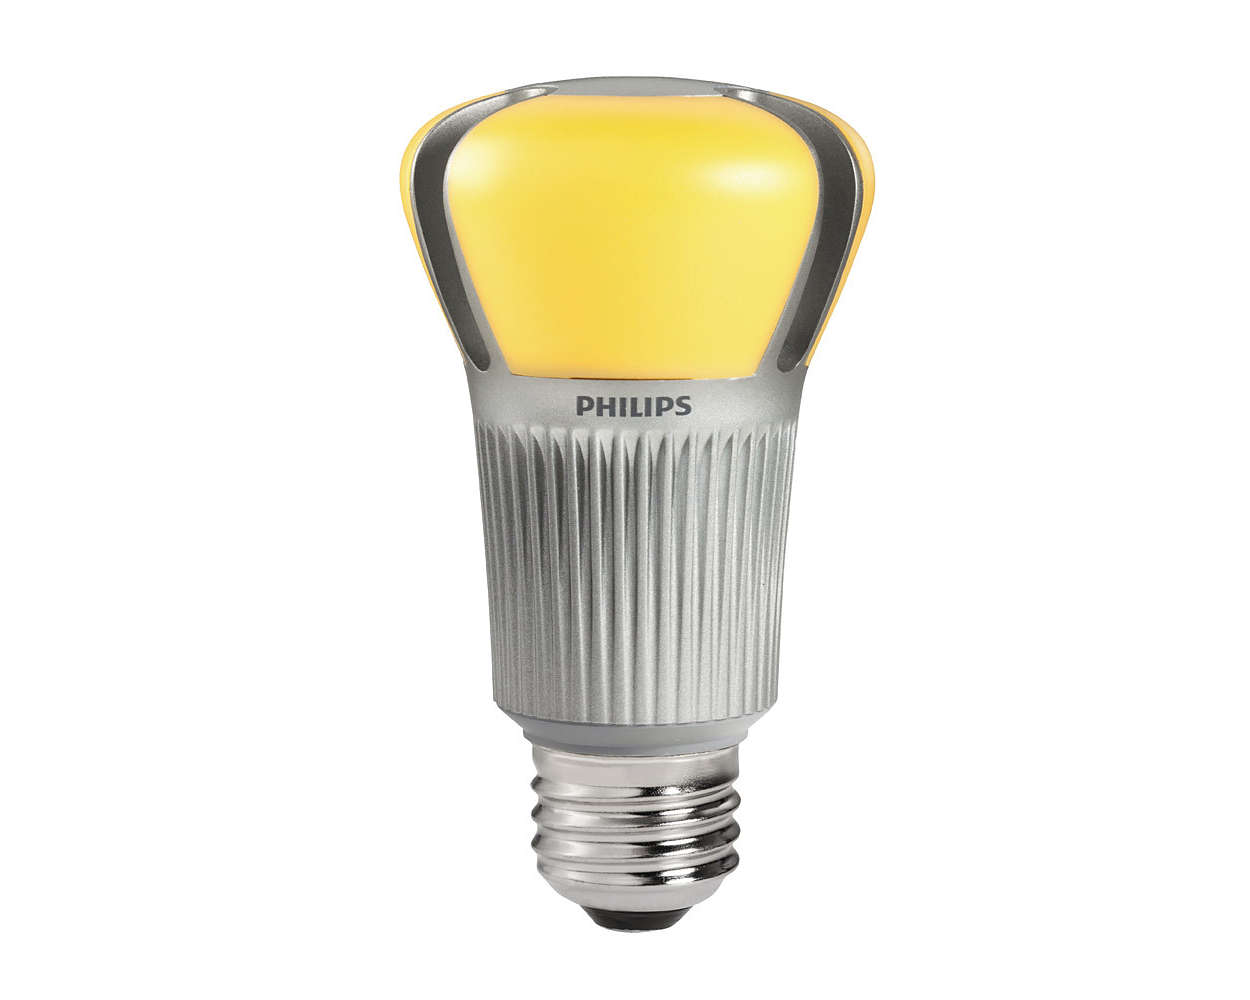 Ambientled Dimmable A19 Bulb Philips Lighting